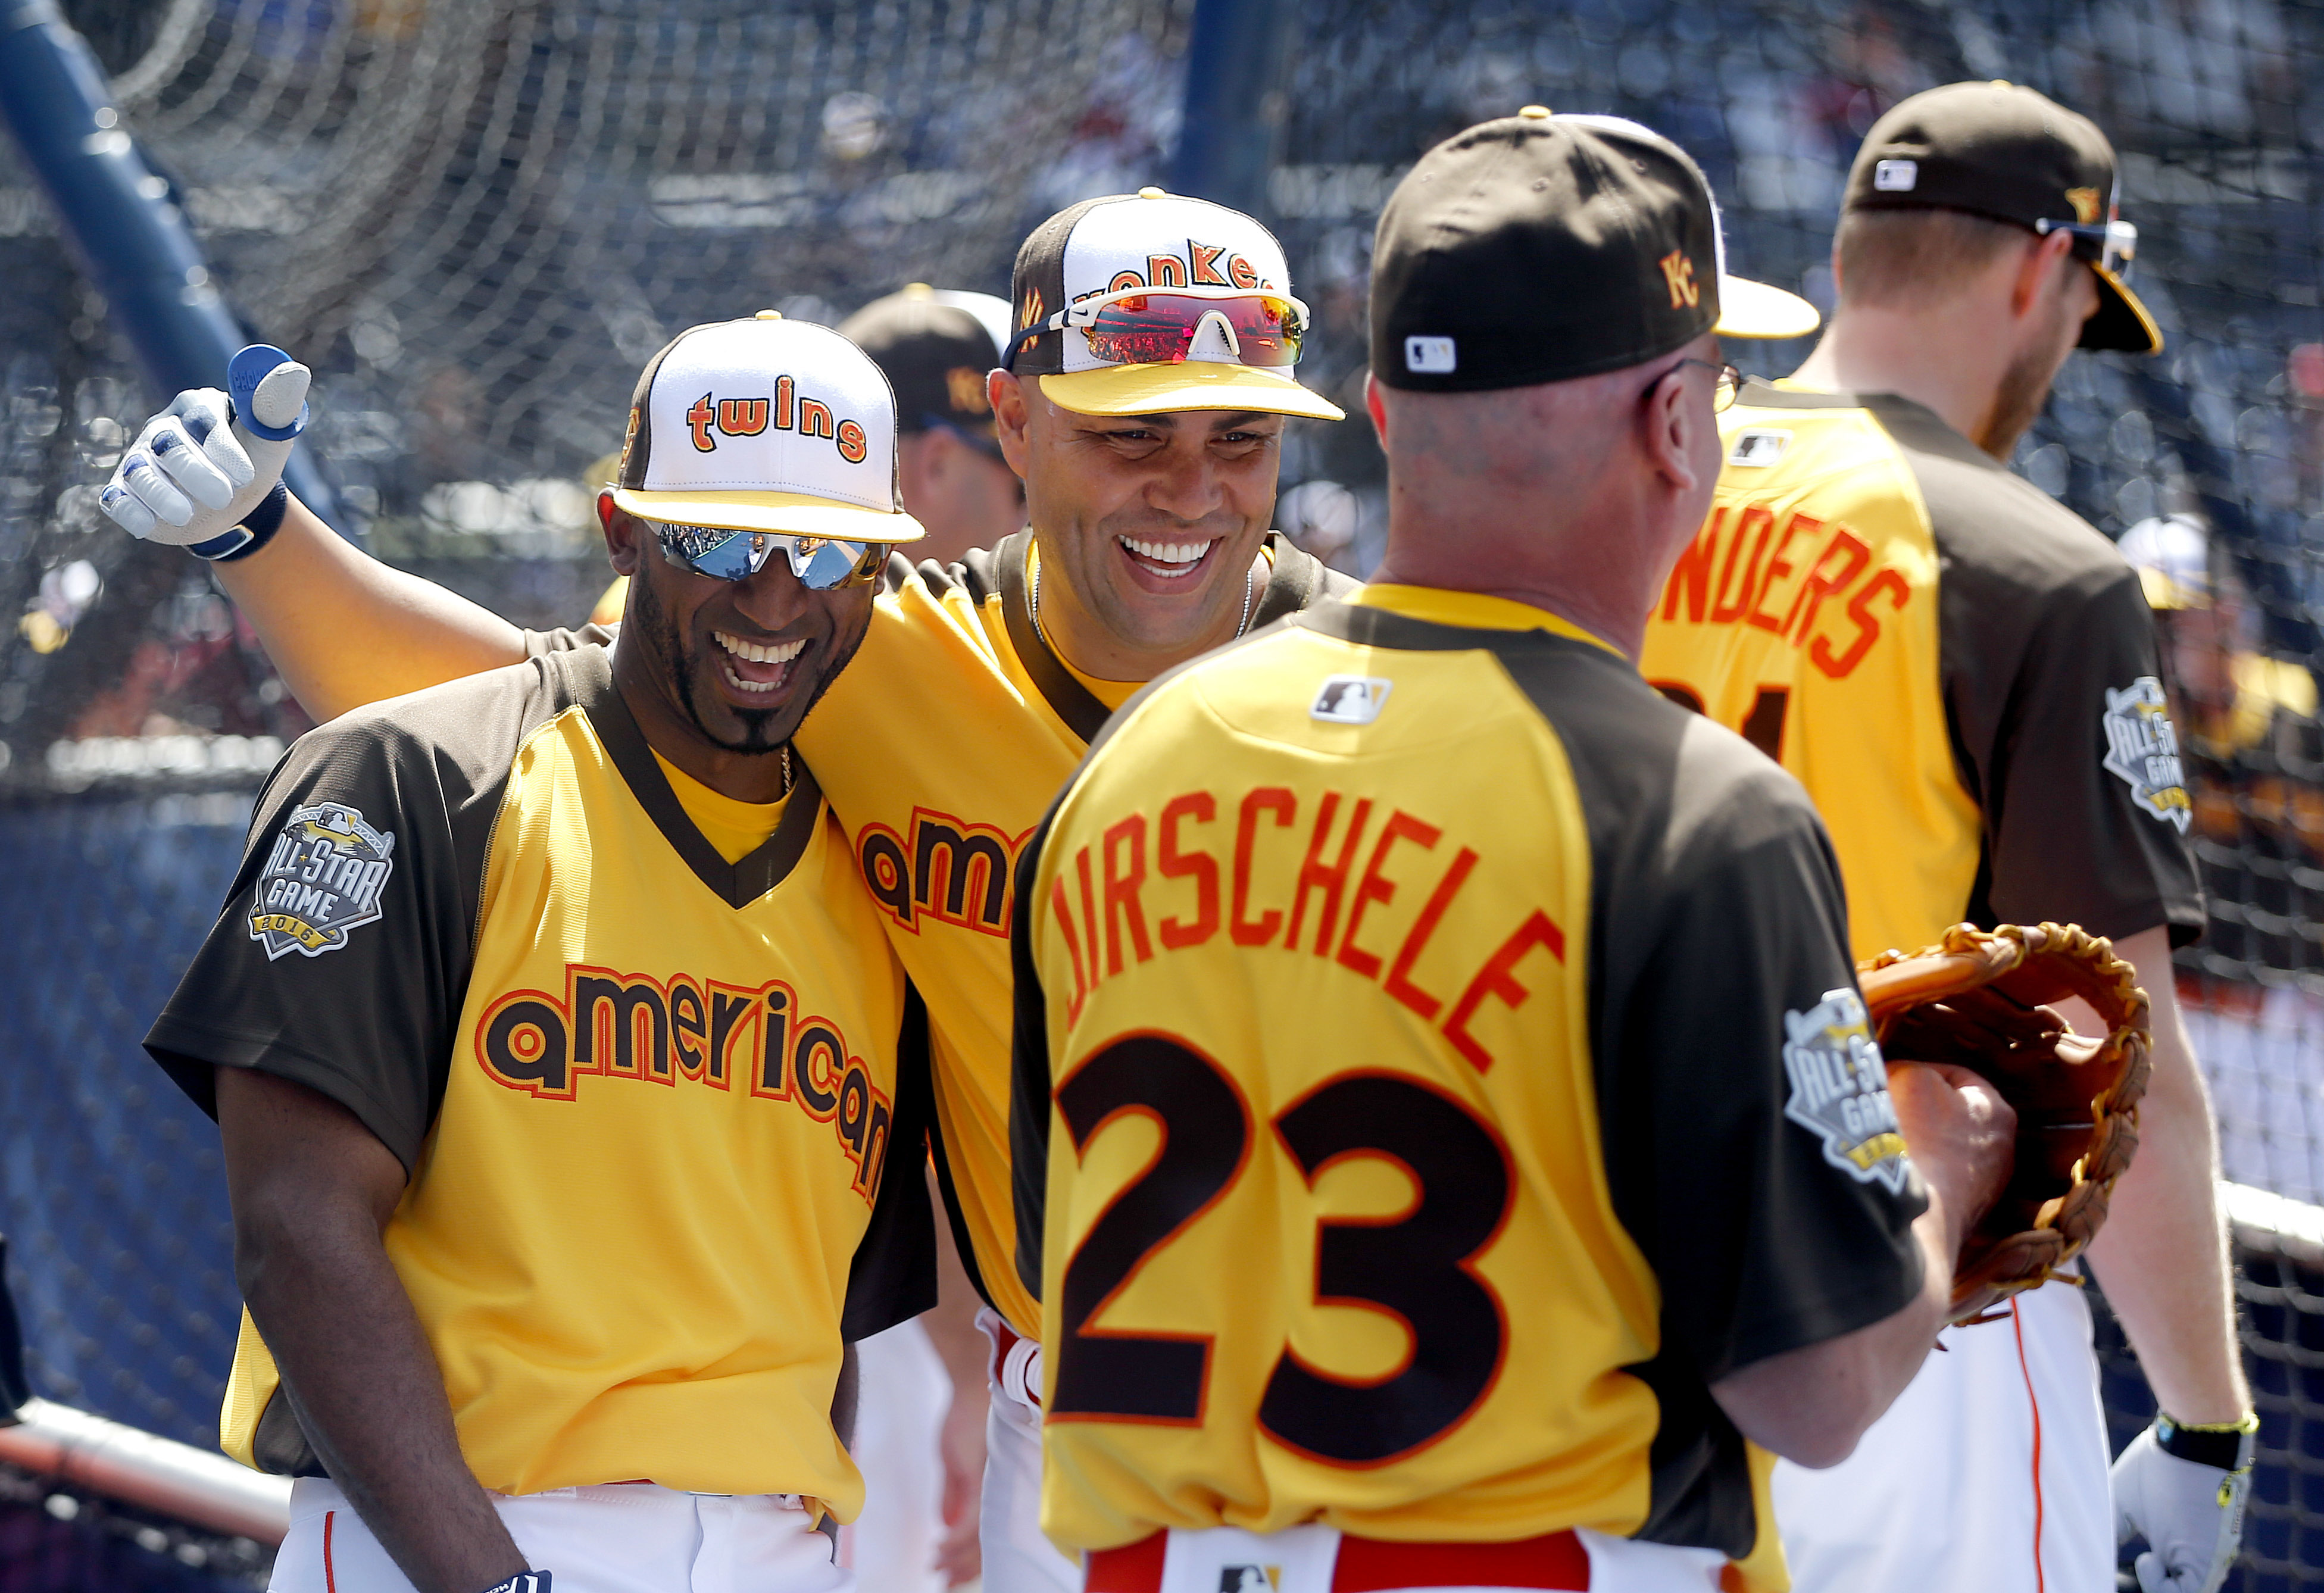 American League's Eduardo Nunez, of the Minnesota Twins, left, and Carlos Beltran, of the New York Yankees, laugh during batting practice prior to the MLB baseball All-Star Home Run Derby, Monday, July 11, 2016, in San Diego. (AP Photo/Lenny Ignelzi)